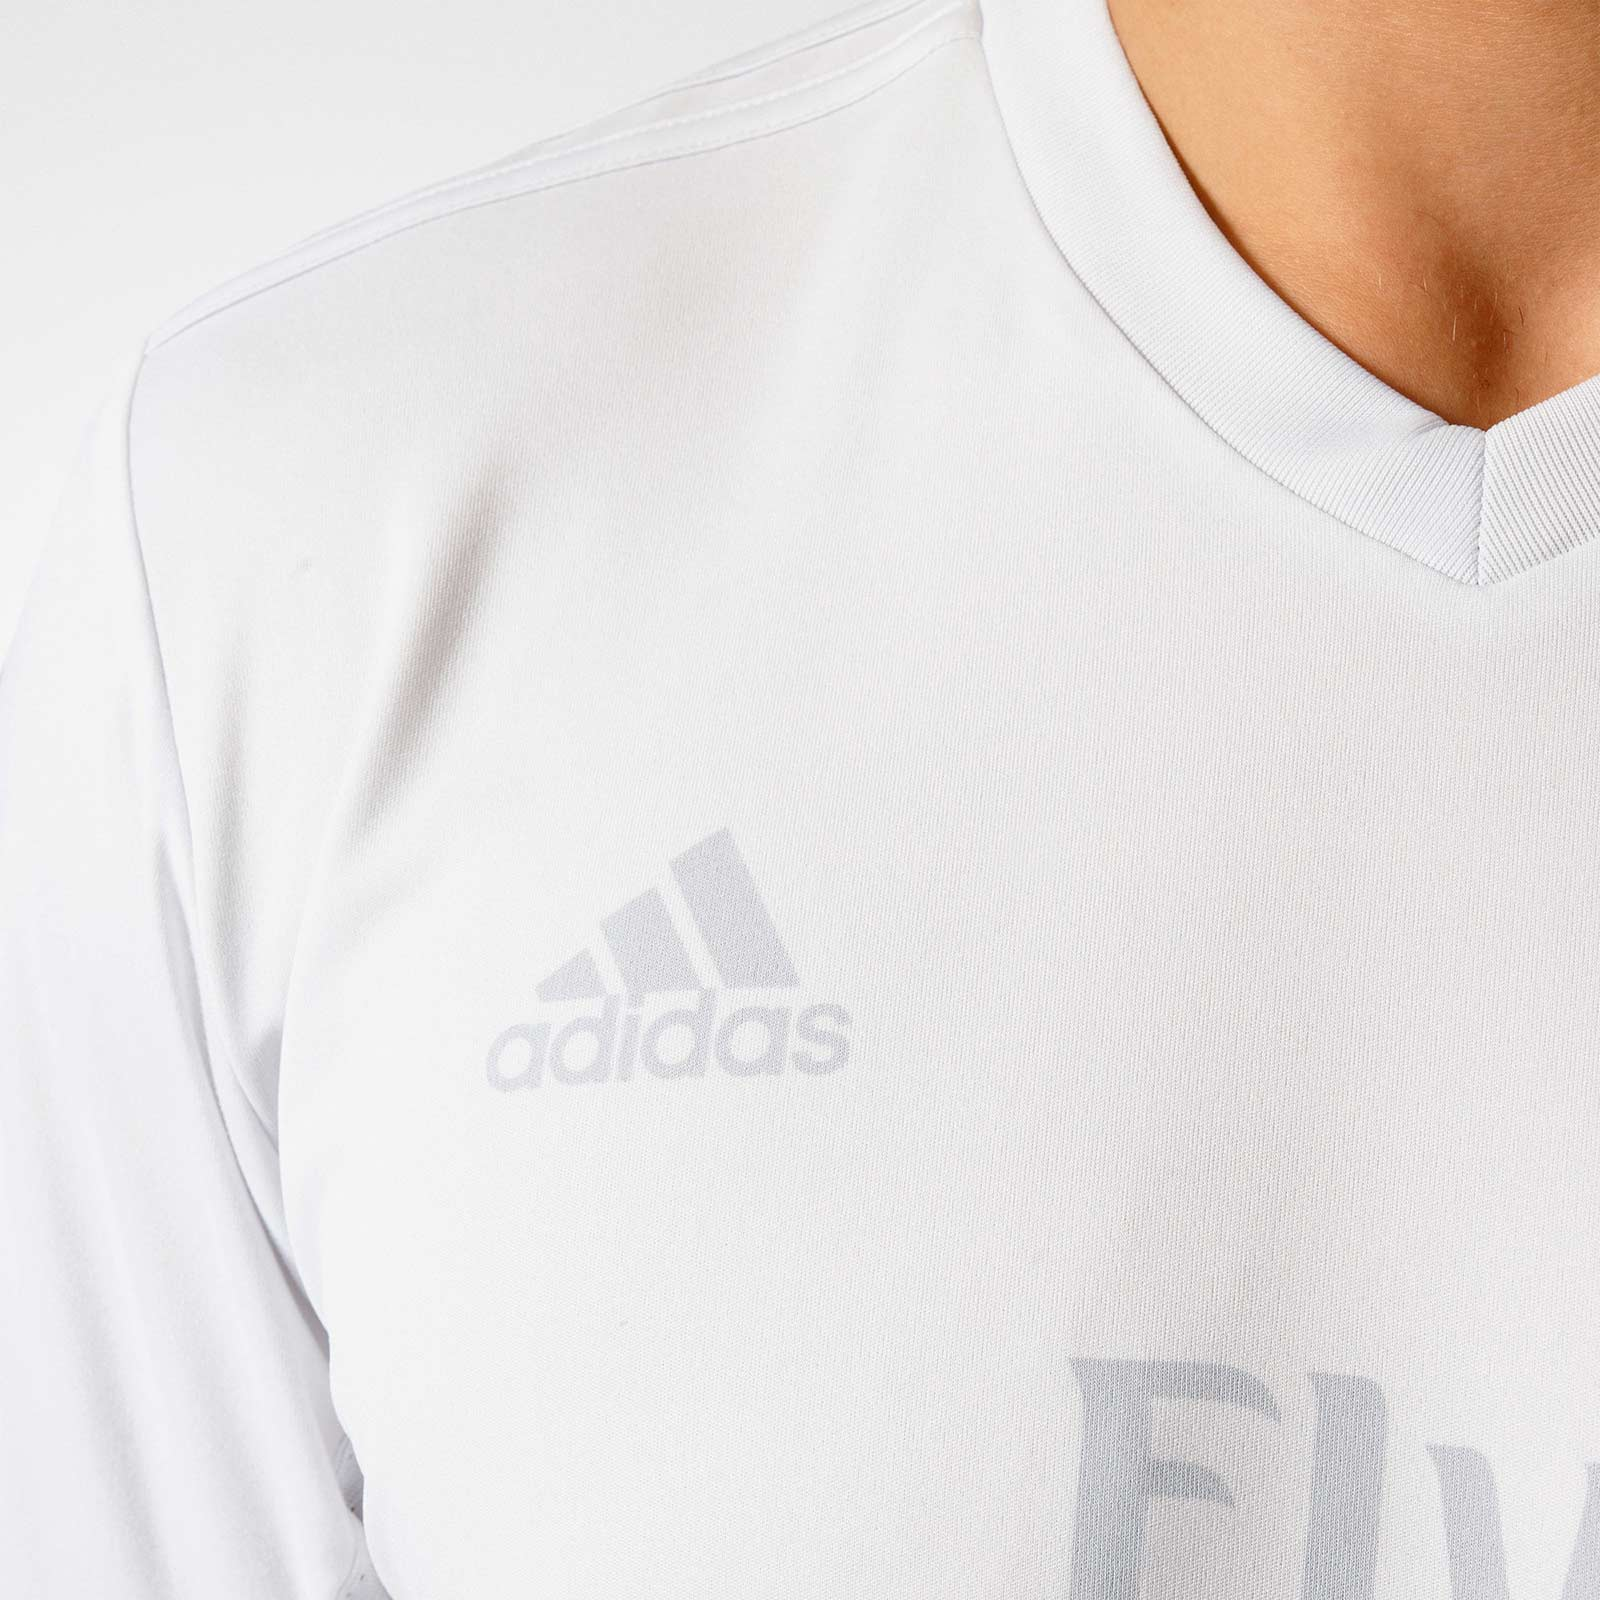 91ee8d4bb7000 The shorts and socks of the Parley Real Madrid kit are entirely white and  don t feature any logos. Unlike the Parley Real Madrid shirt